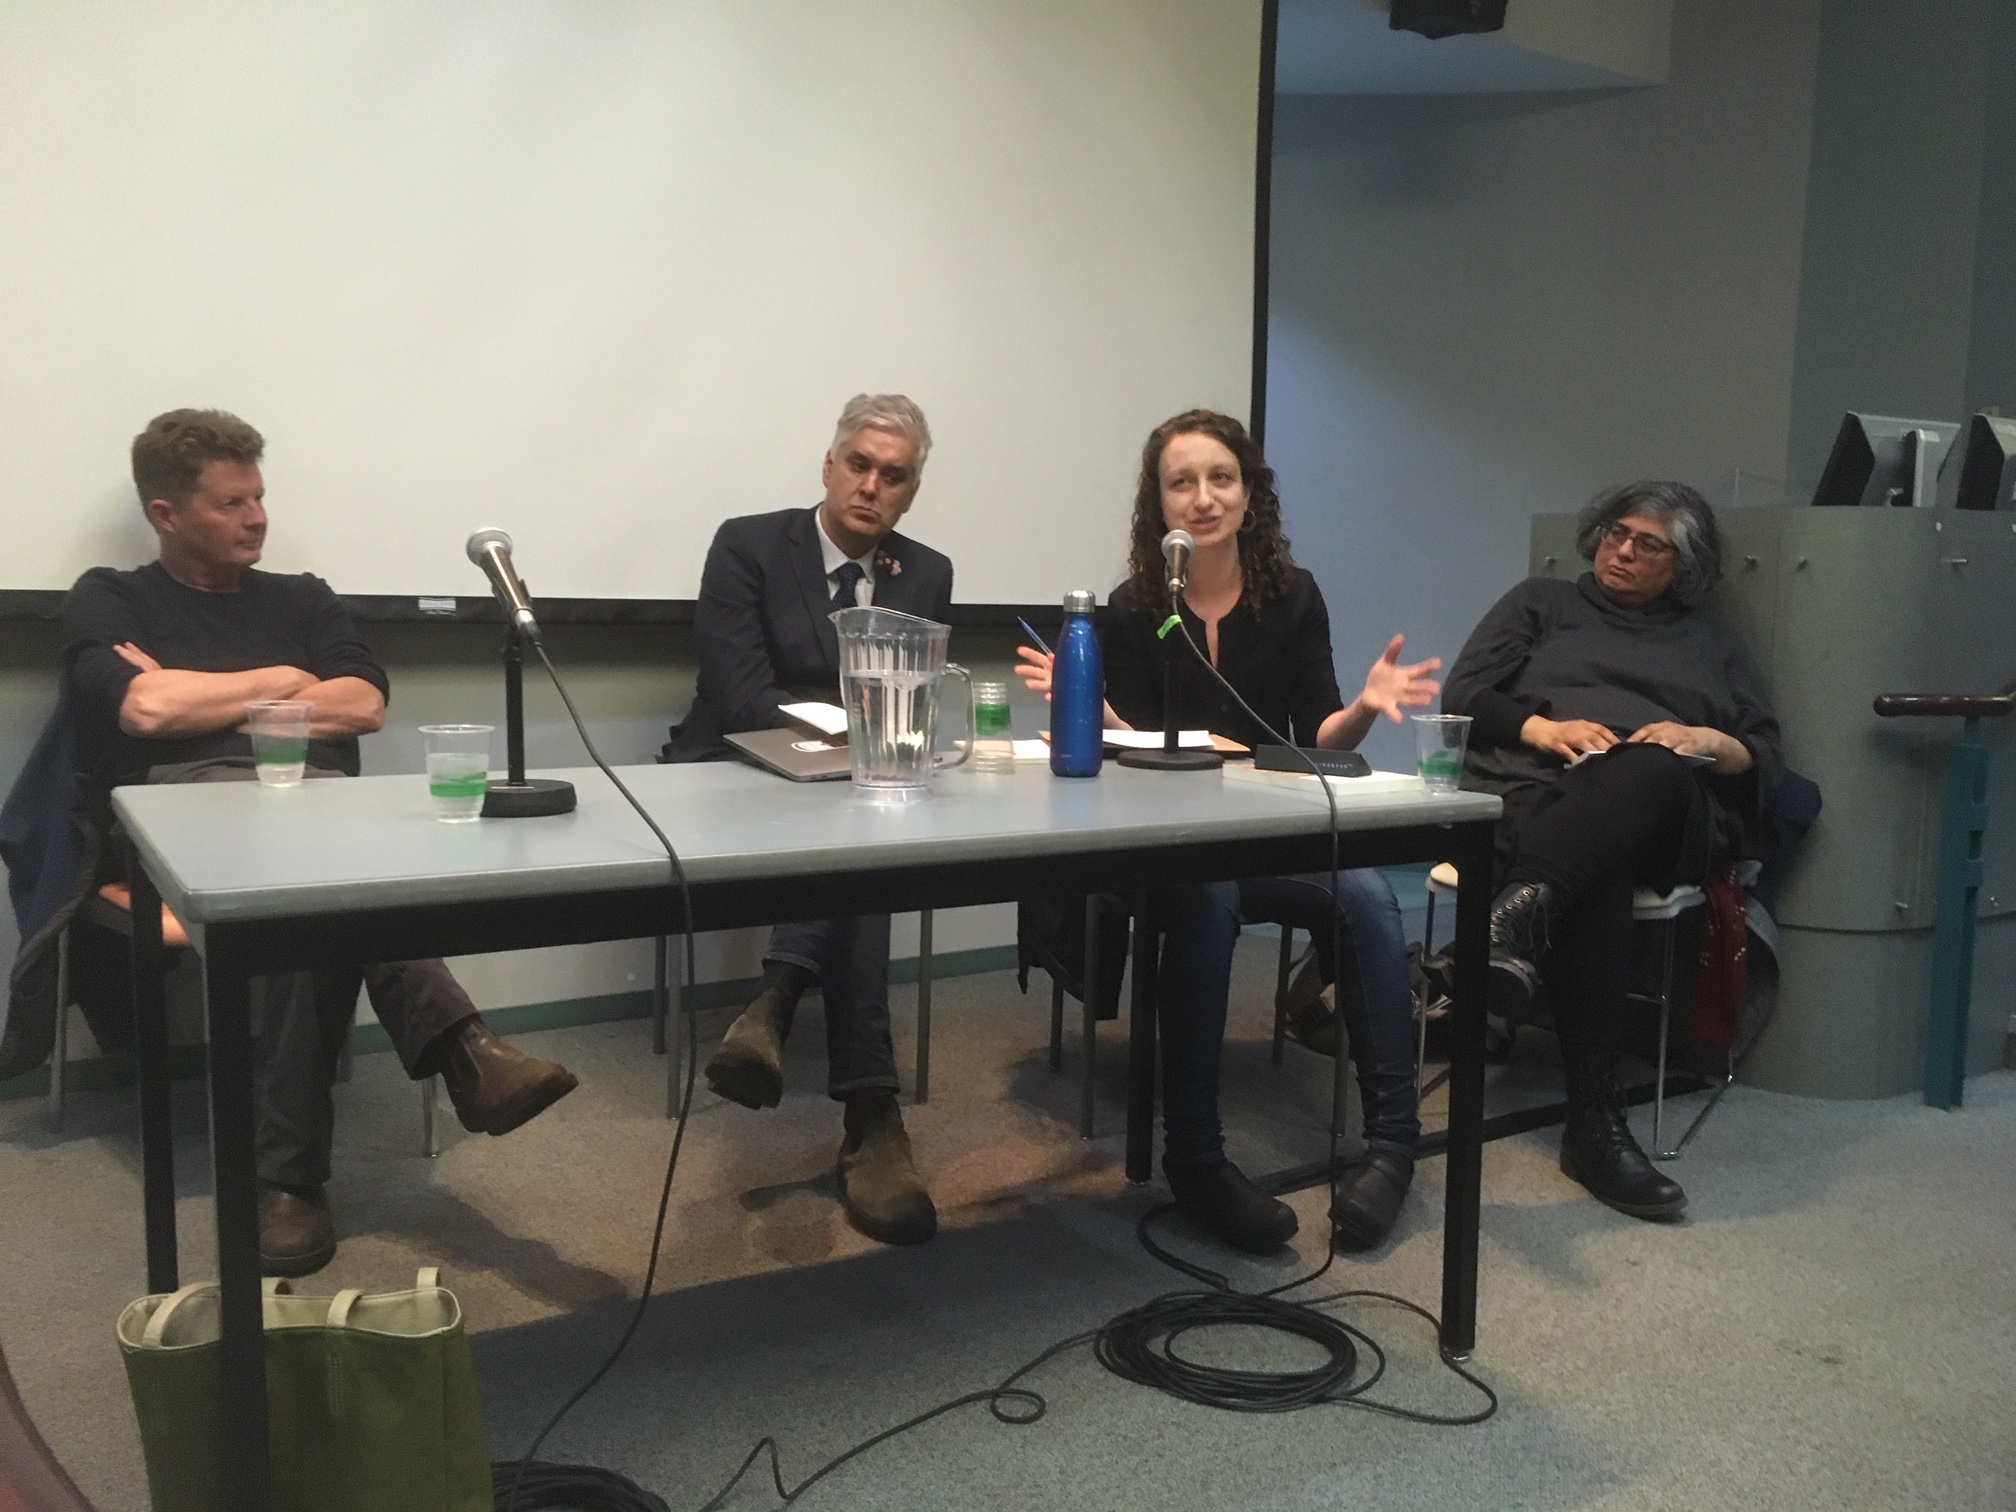 Colonial Lives of Property Panel - SFU Harbour Centre - April 9, 2019 (7).JPG